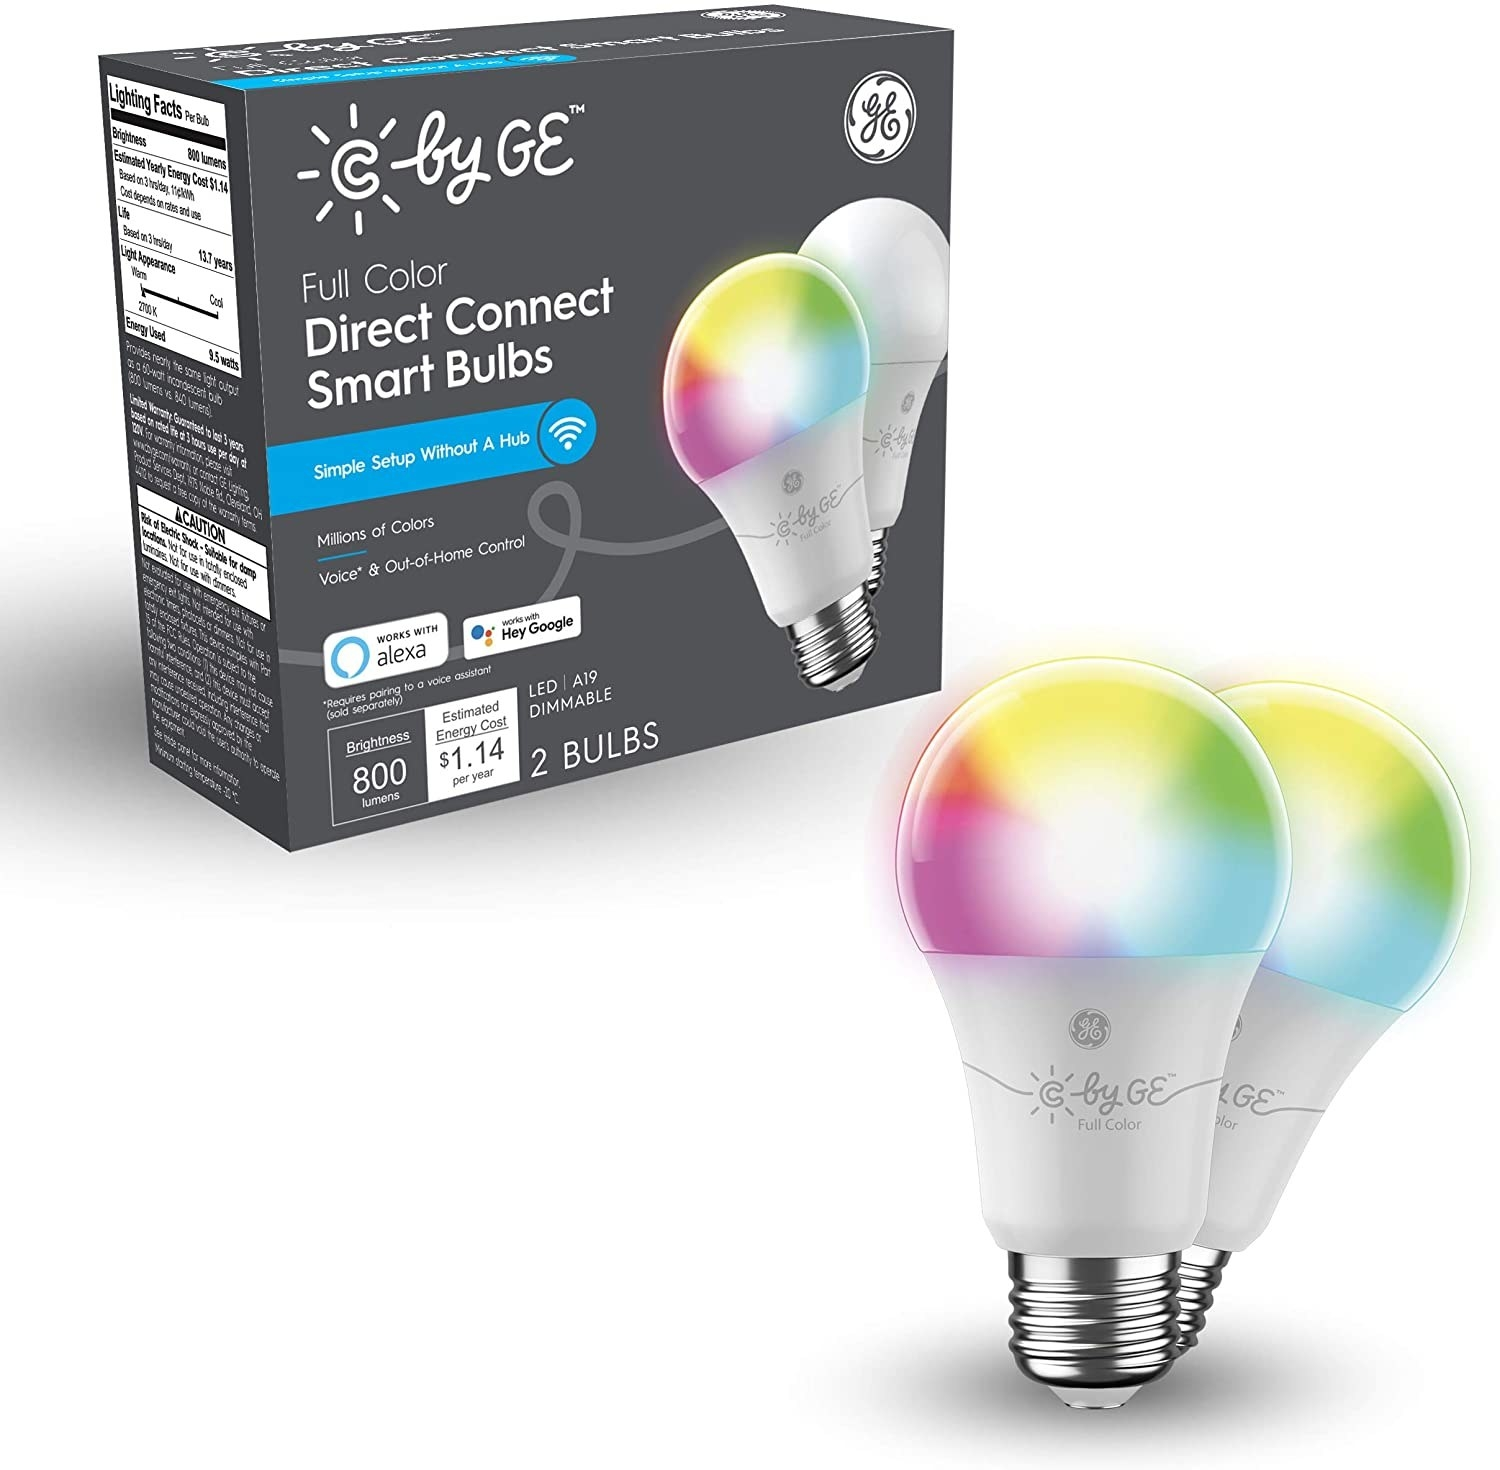 the light bulbs in the color spectrum option that allows you to adjust the dim of the light and also change the color to green red or any other color you choose